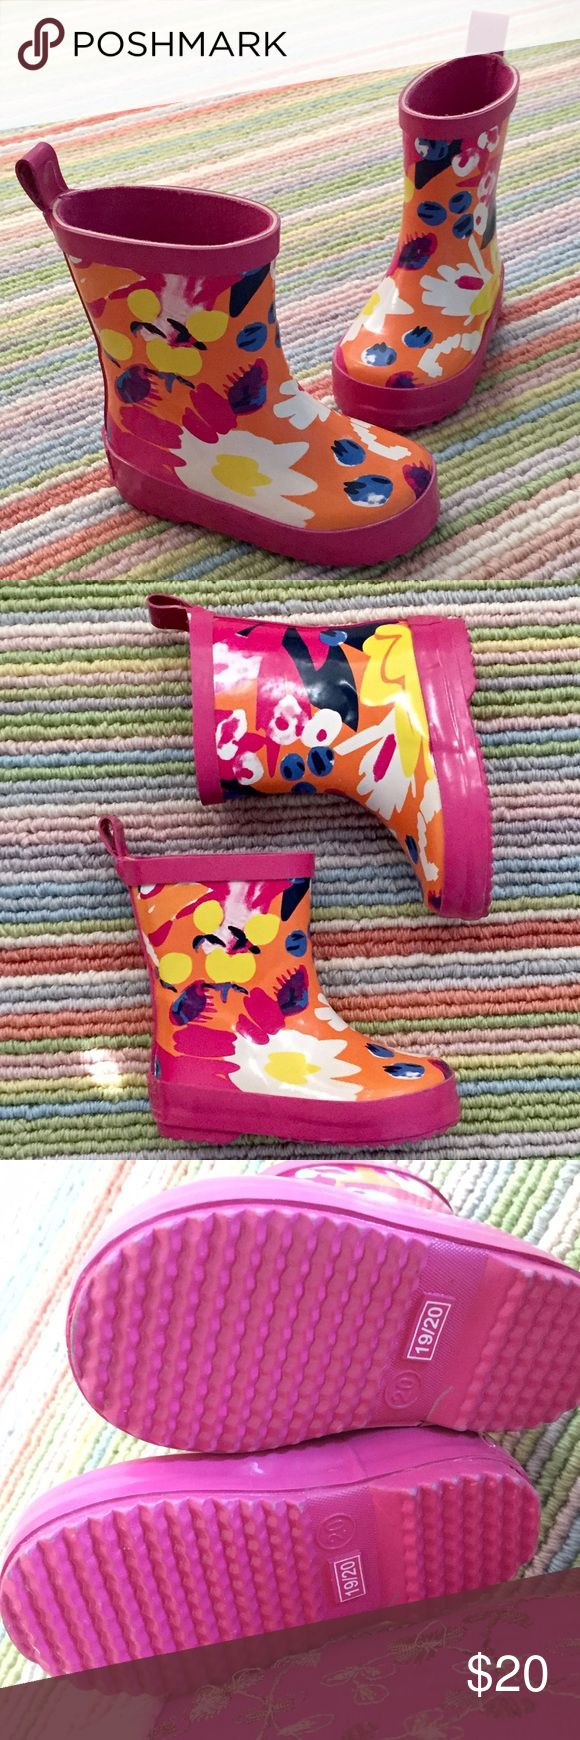 CATIMINI PINK RUBBER RAIN BOOTS size 19/20  4-4.5 CATIMINI pink rubber wellies rainboots. Floral pattern.  Worn but never walked in.  Euro size 19-20.  US size 4-4.5. Catimini Shoes Rain & Snow Boots